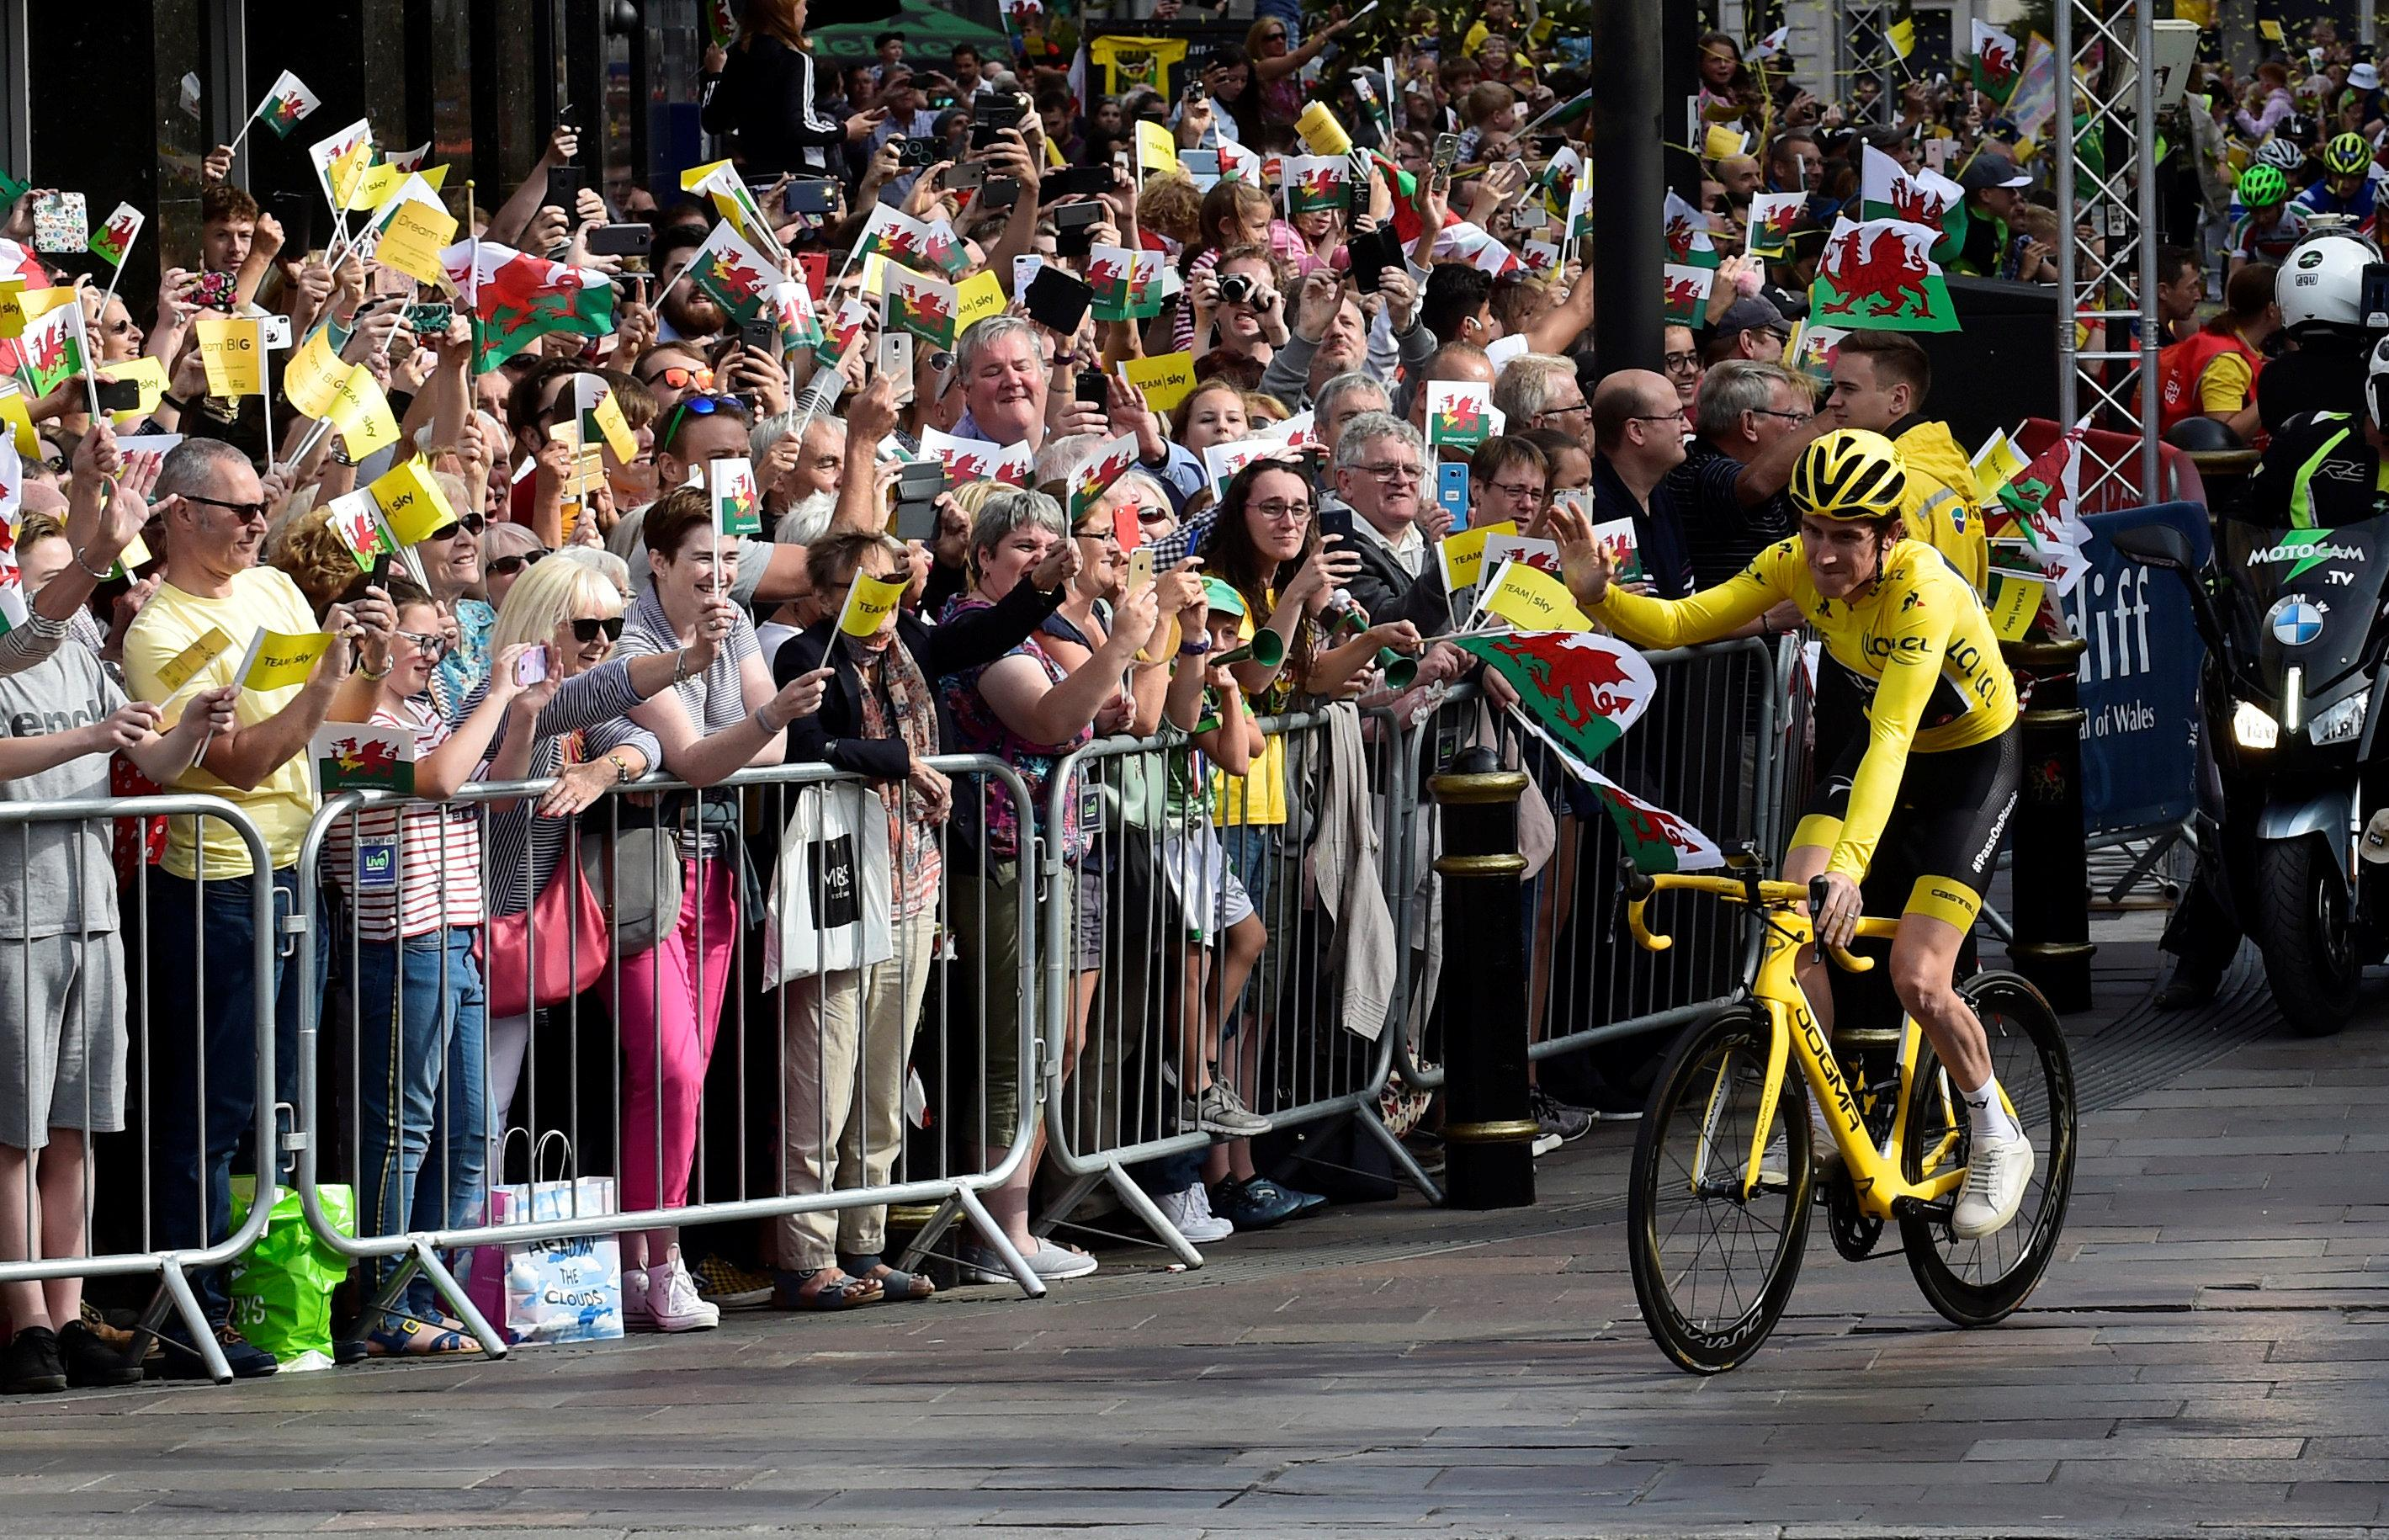 Thomas was basking in the glow of his Tour de France glory after romping to victory on the roads of France - and is now set to sign a new deal with Team Sky